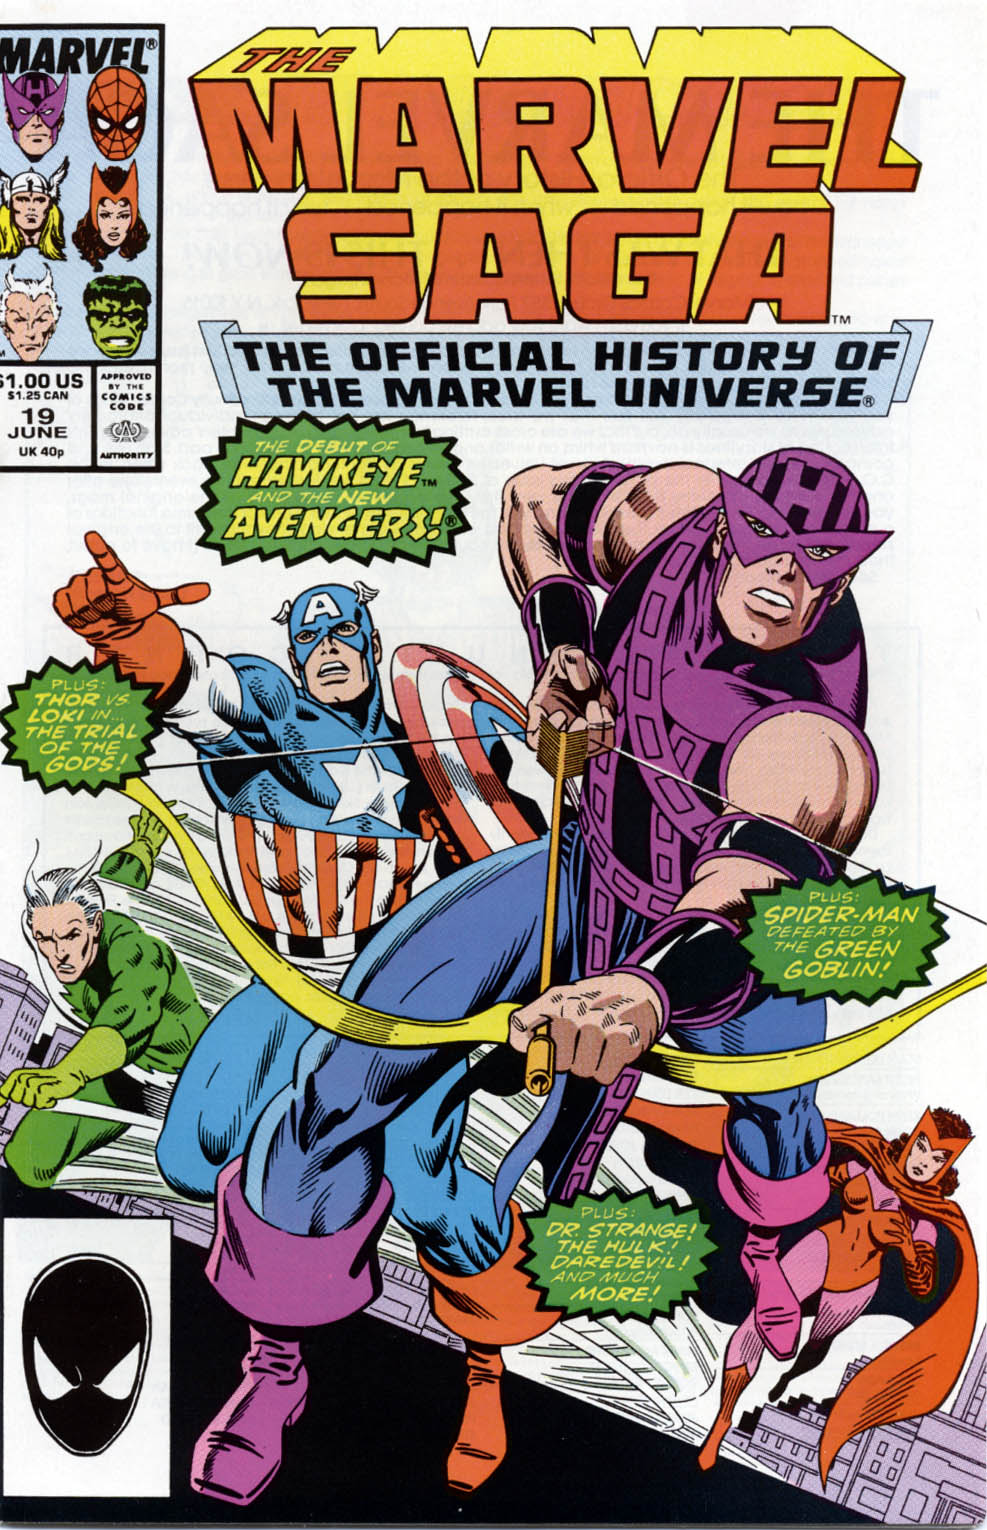 Marvel Saga: The Official History of the Marvel Universe 19 Page 1